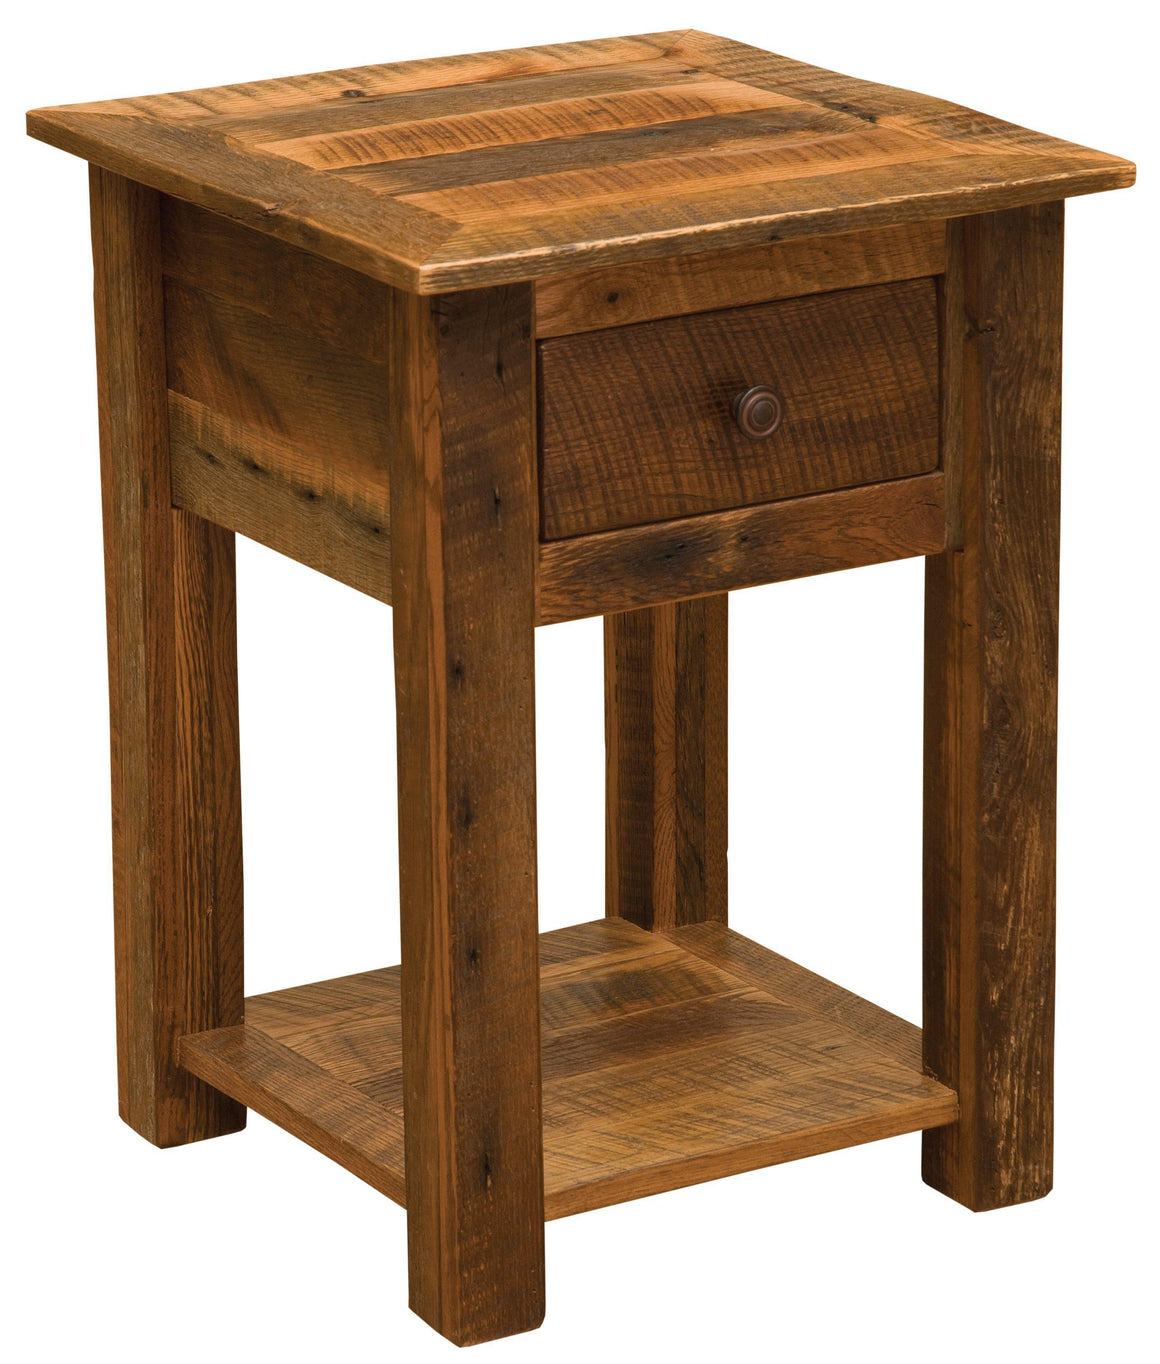 Barnwood One Drawer End Table with Open Shelf - Barnwood Legs - Rustic Deco Incorporated